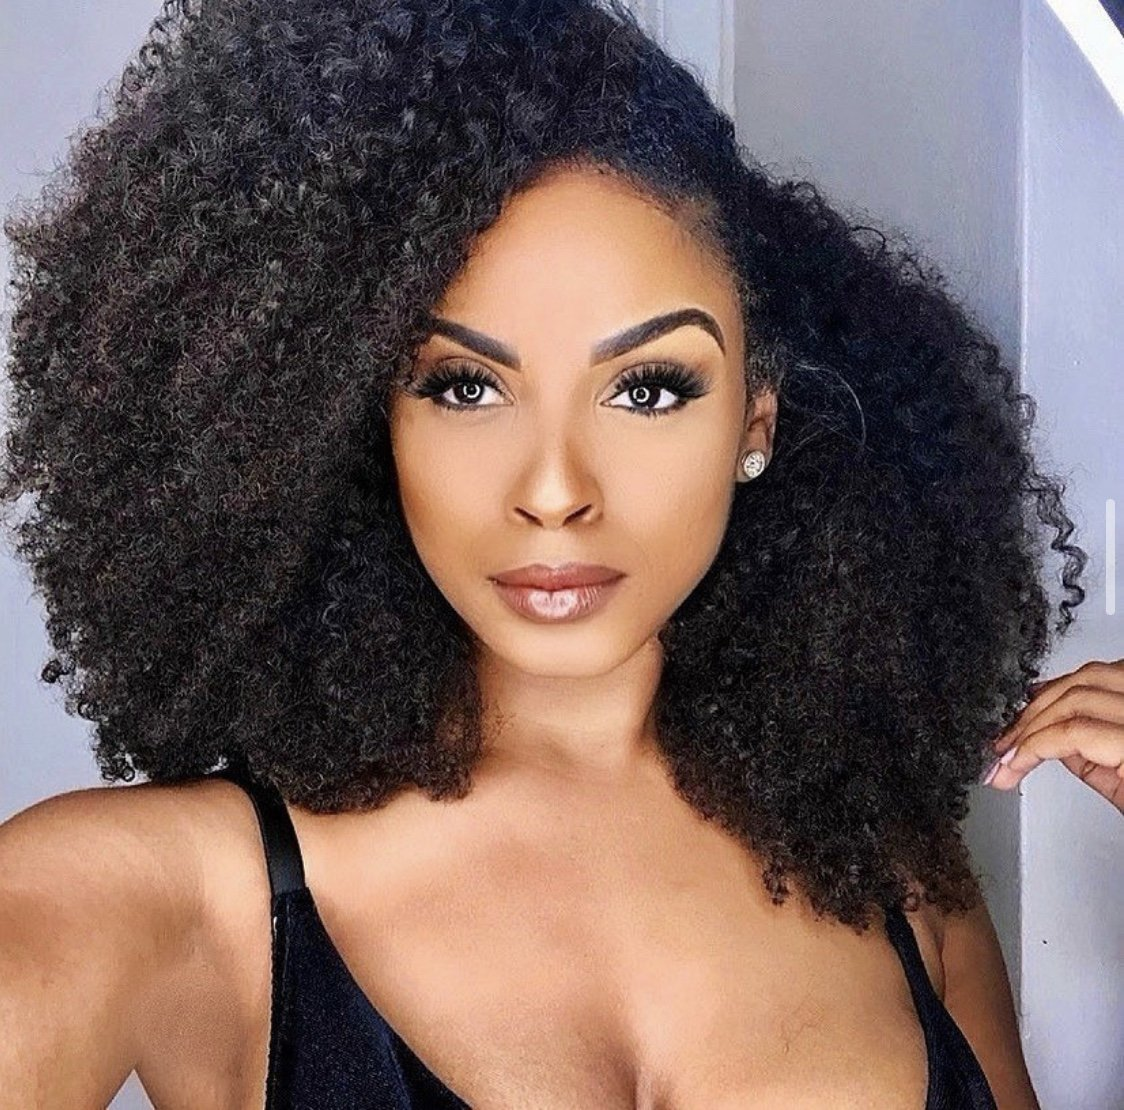 Recipe for Growth: Foods that Boost Hair Growth curlynikki